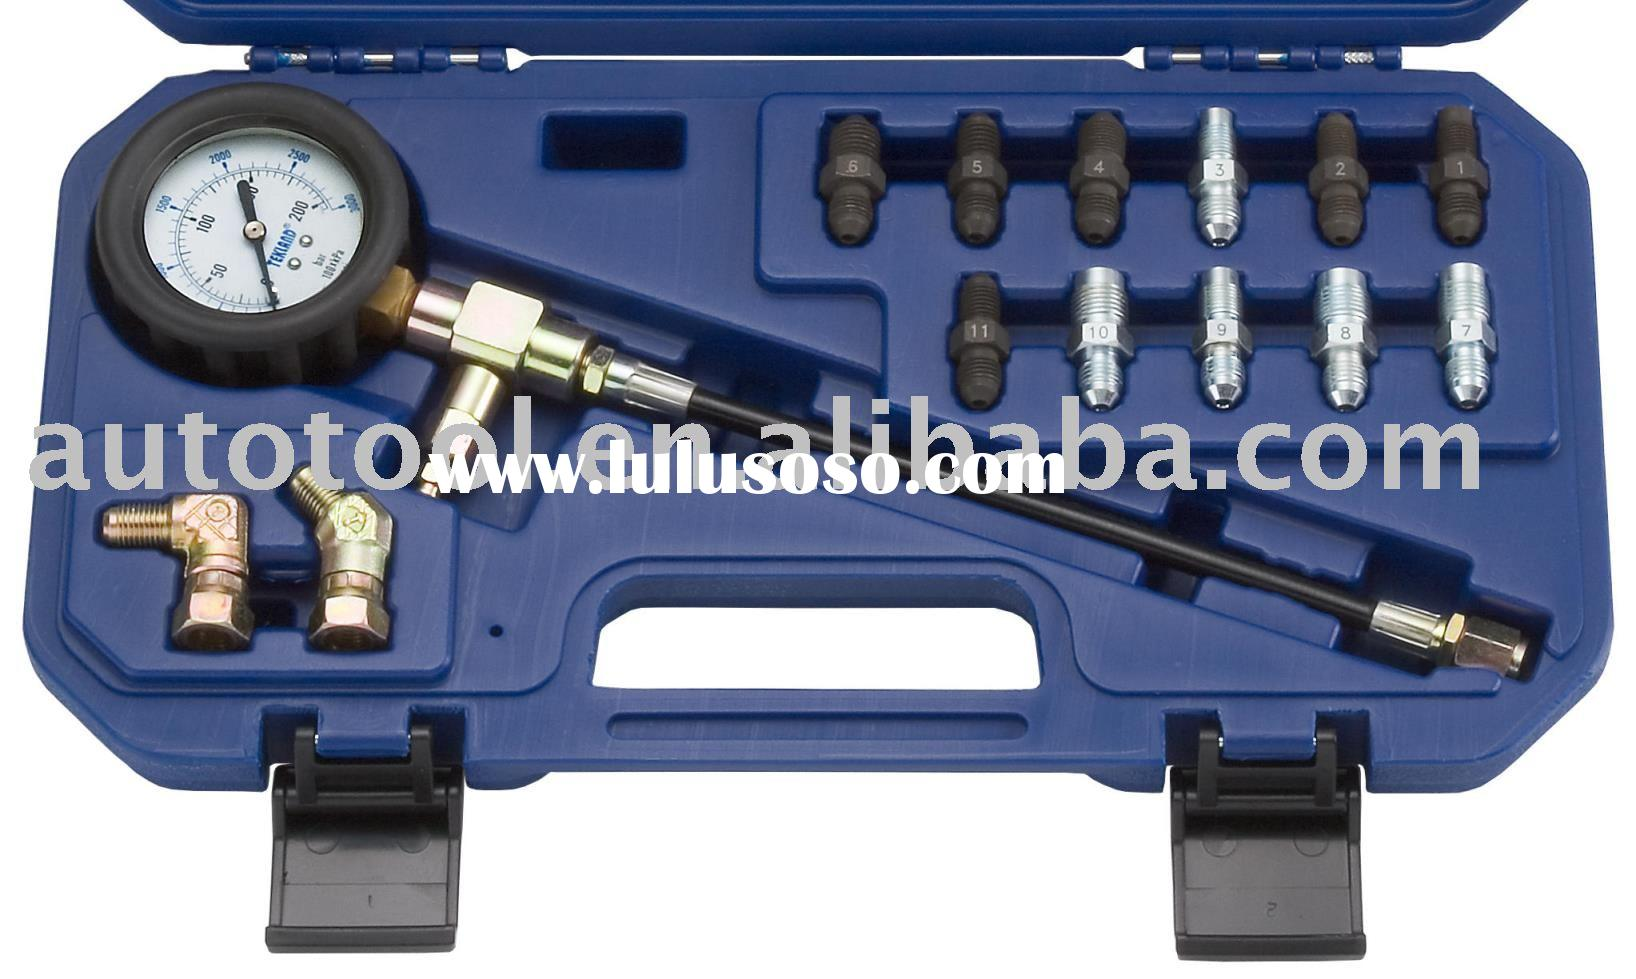 MASTER Cylinder Pressure Test Kit (Brake & Clutch)